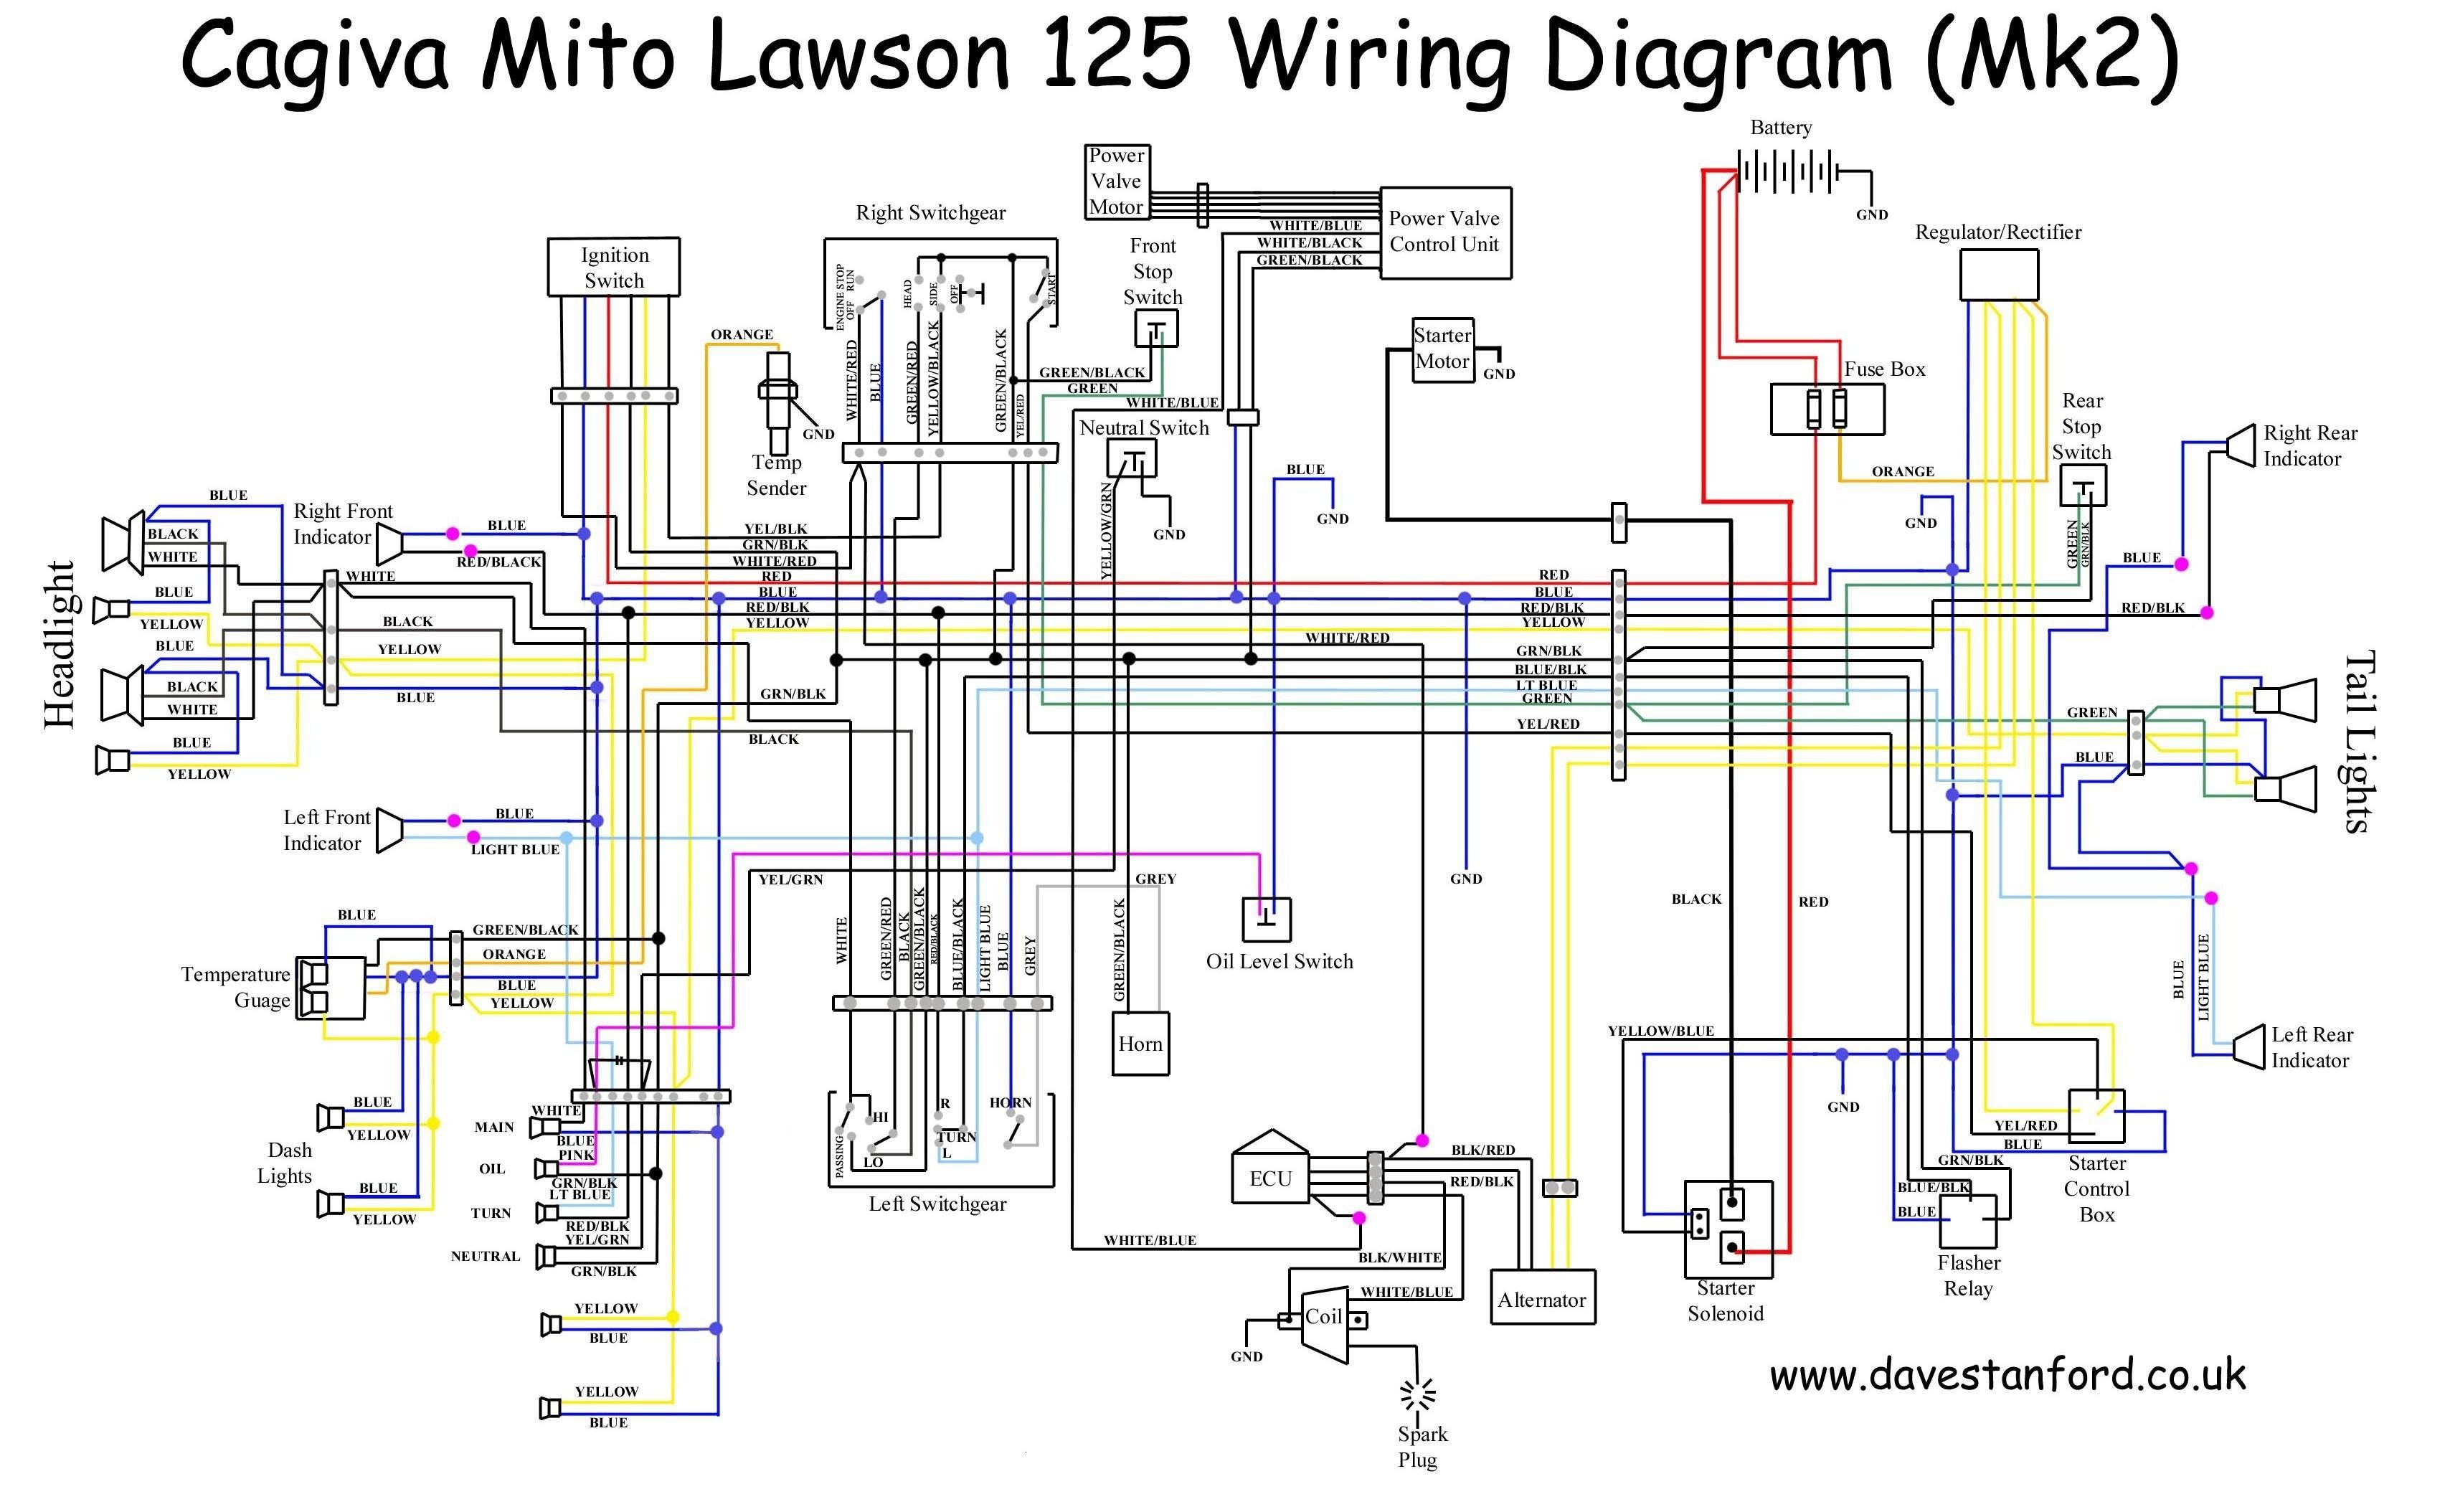 110 punch down block wiring diagram - ford excursion 7 3 fuel wiring diagram  for wiring diagram schematics  wiring diagram schematics